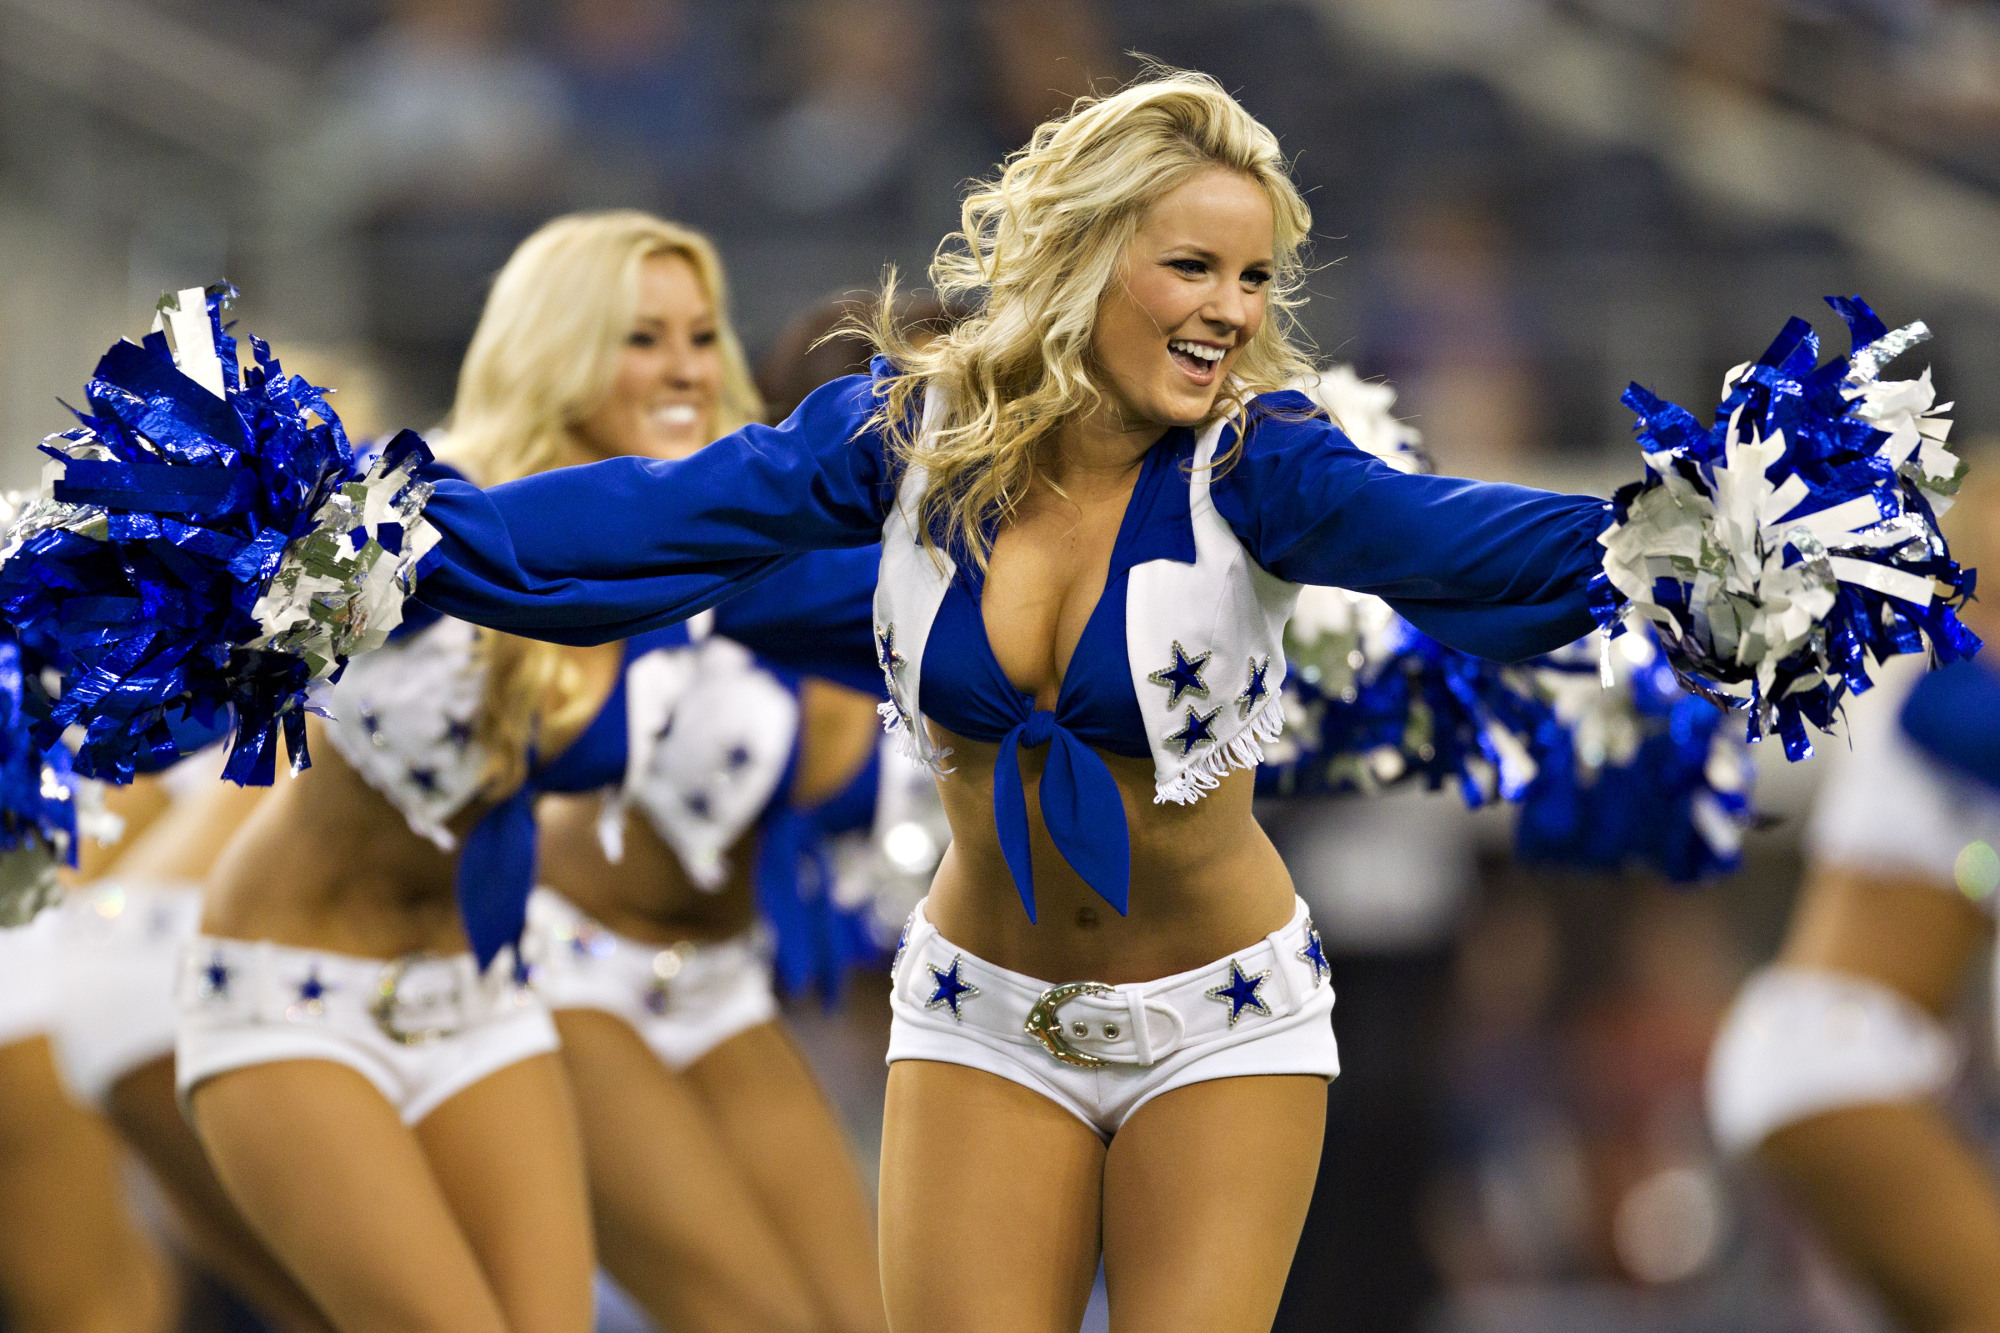 Beautiful Wallpaper Football Cowboys - ce9ca05ca7e8b56caaa81cdf6b695806  Trends_9495 .jpg